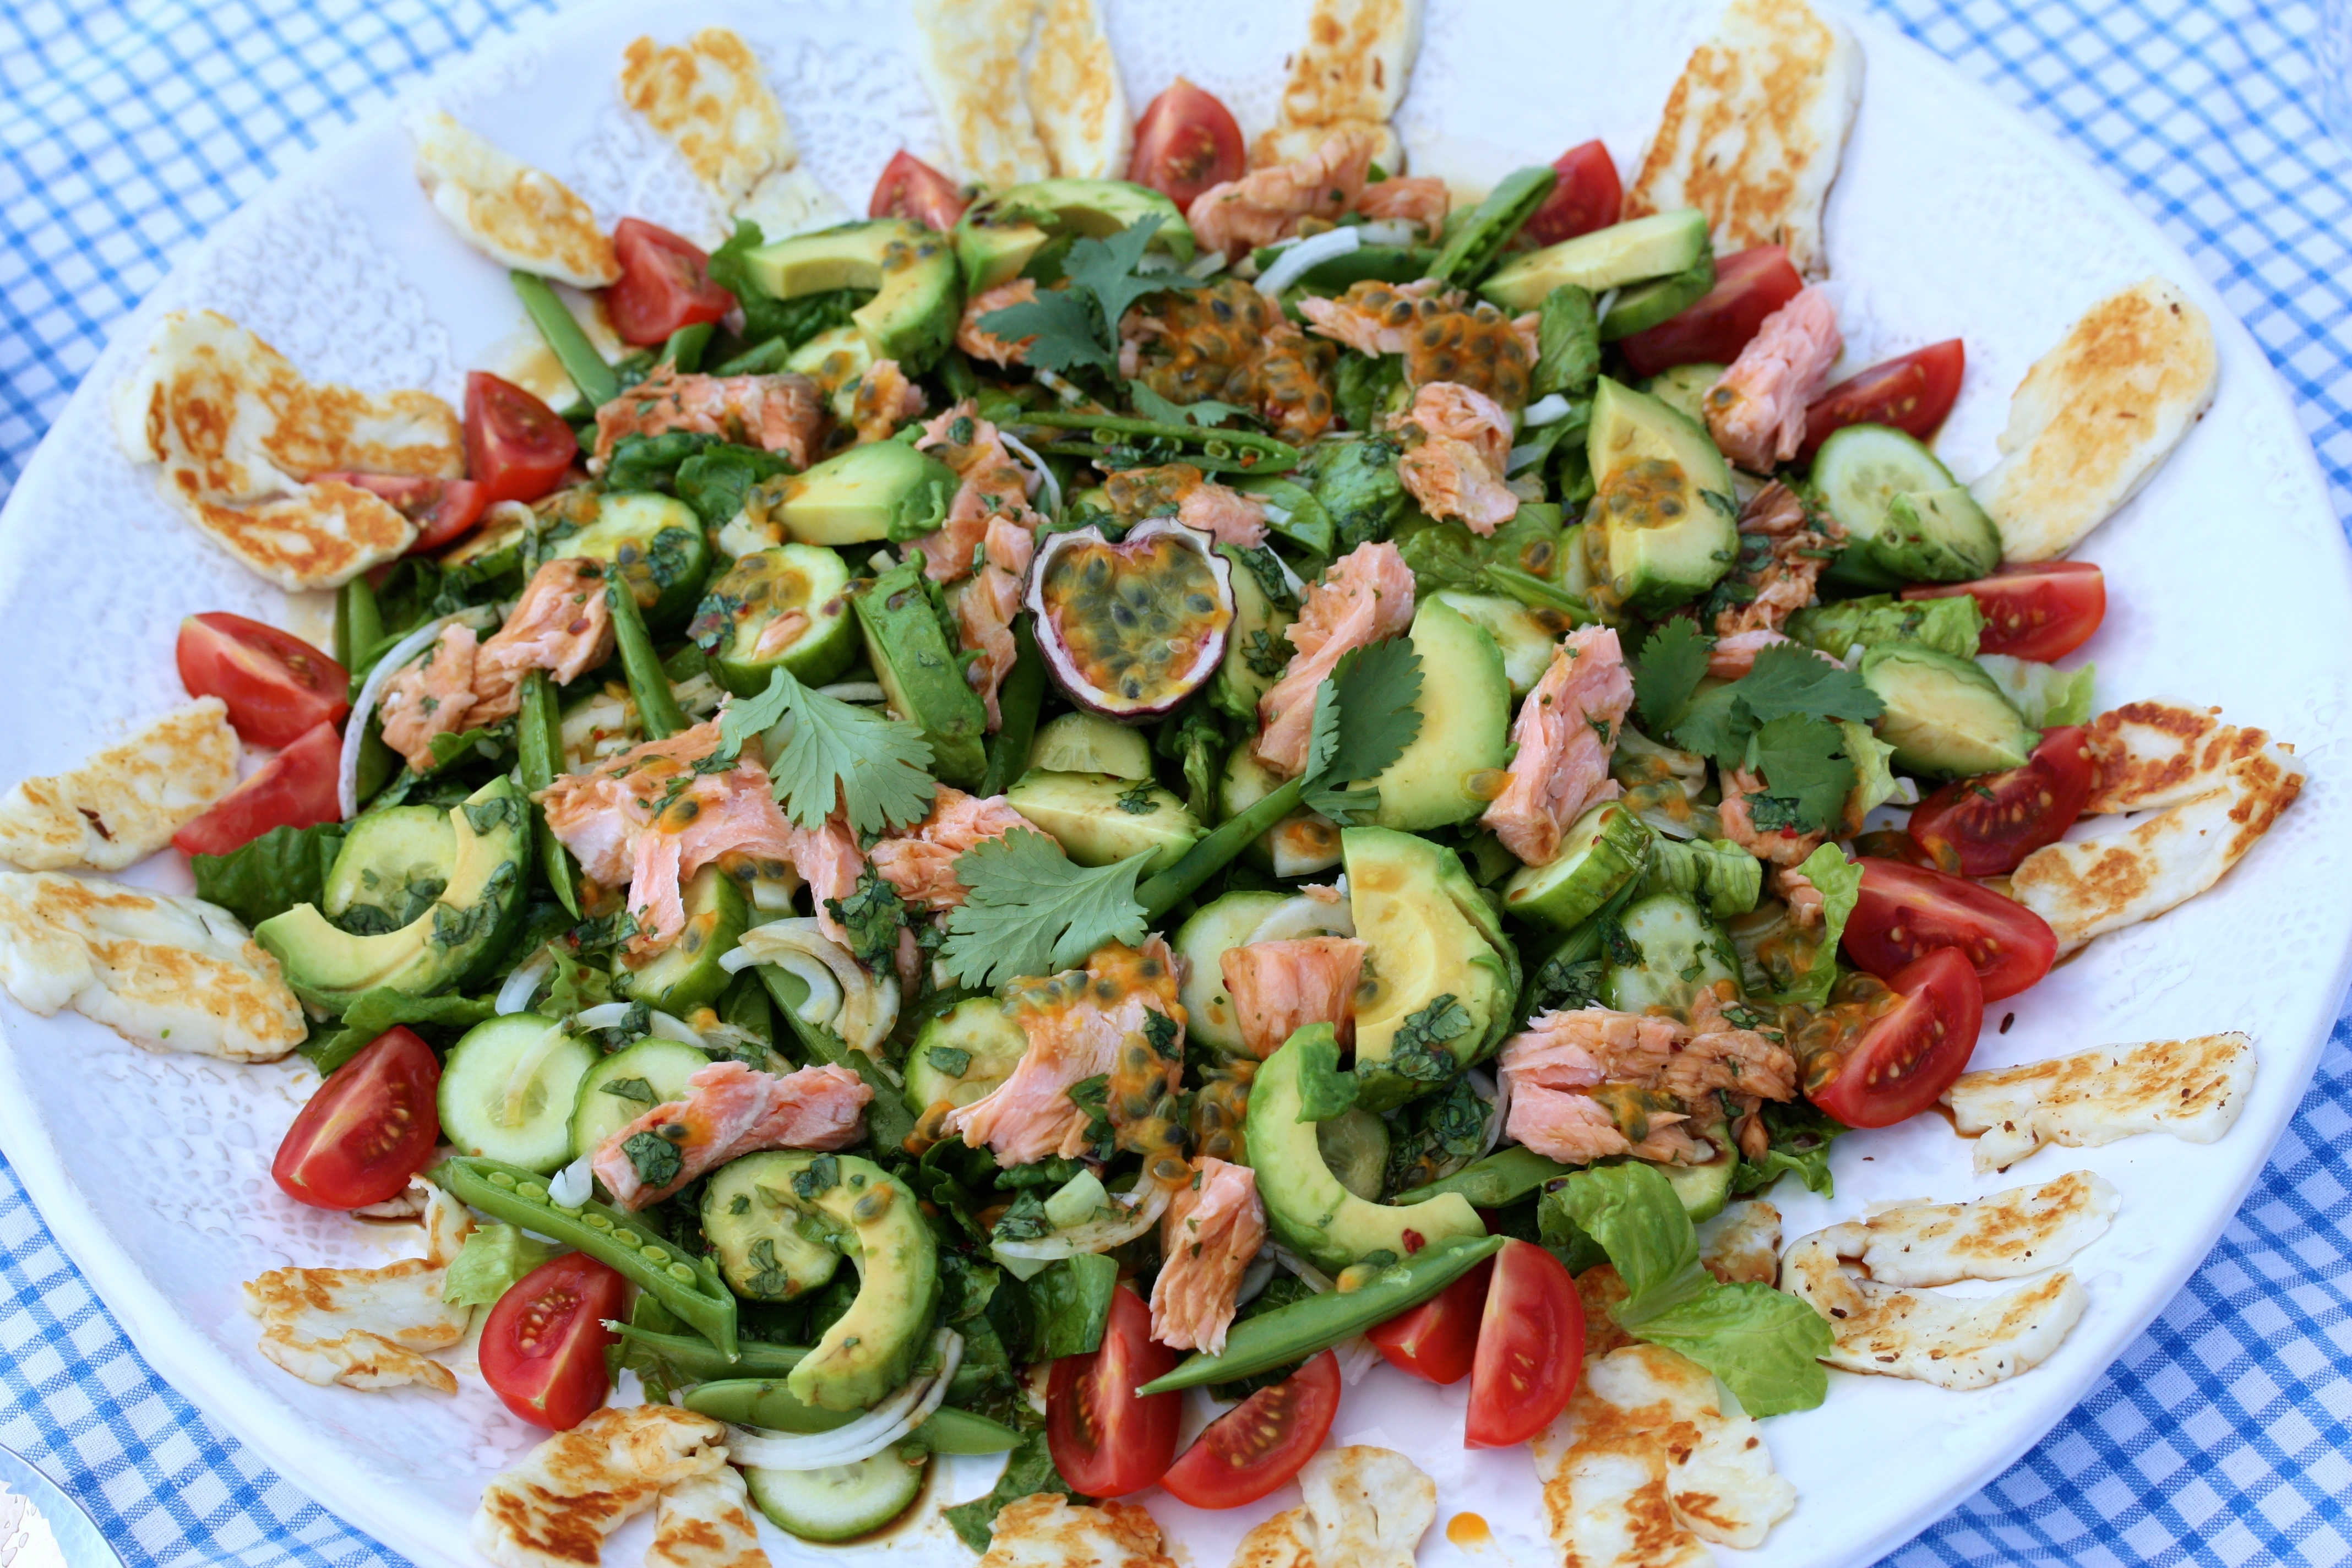 Awesome Salmon & Passion fruit Salad with Cilantro Dressing – Fantastisk Lax & Passionsfrukts Sallad med Koriander Dressing